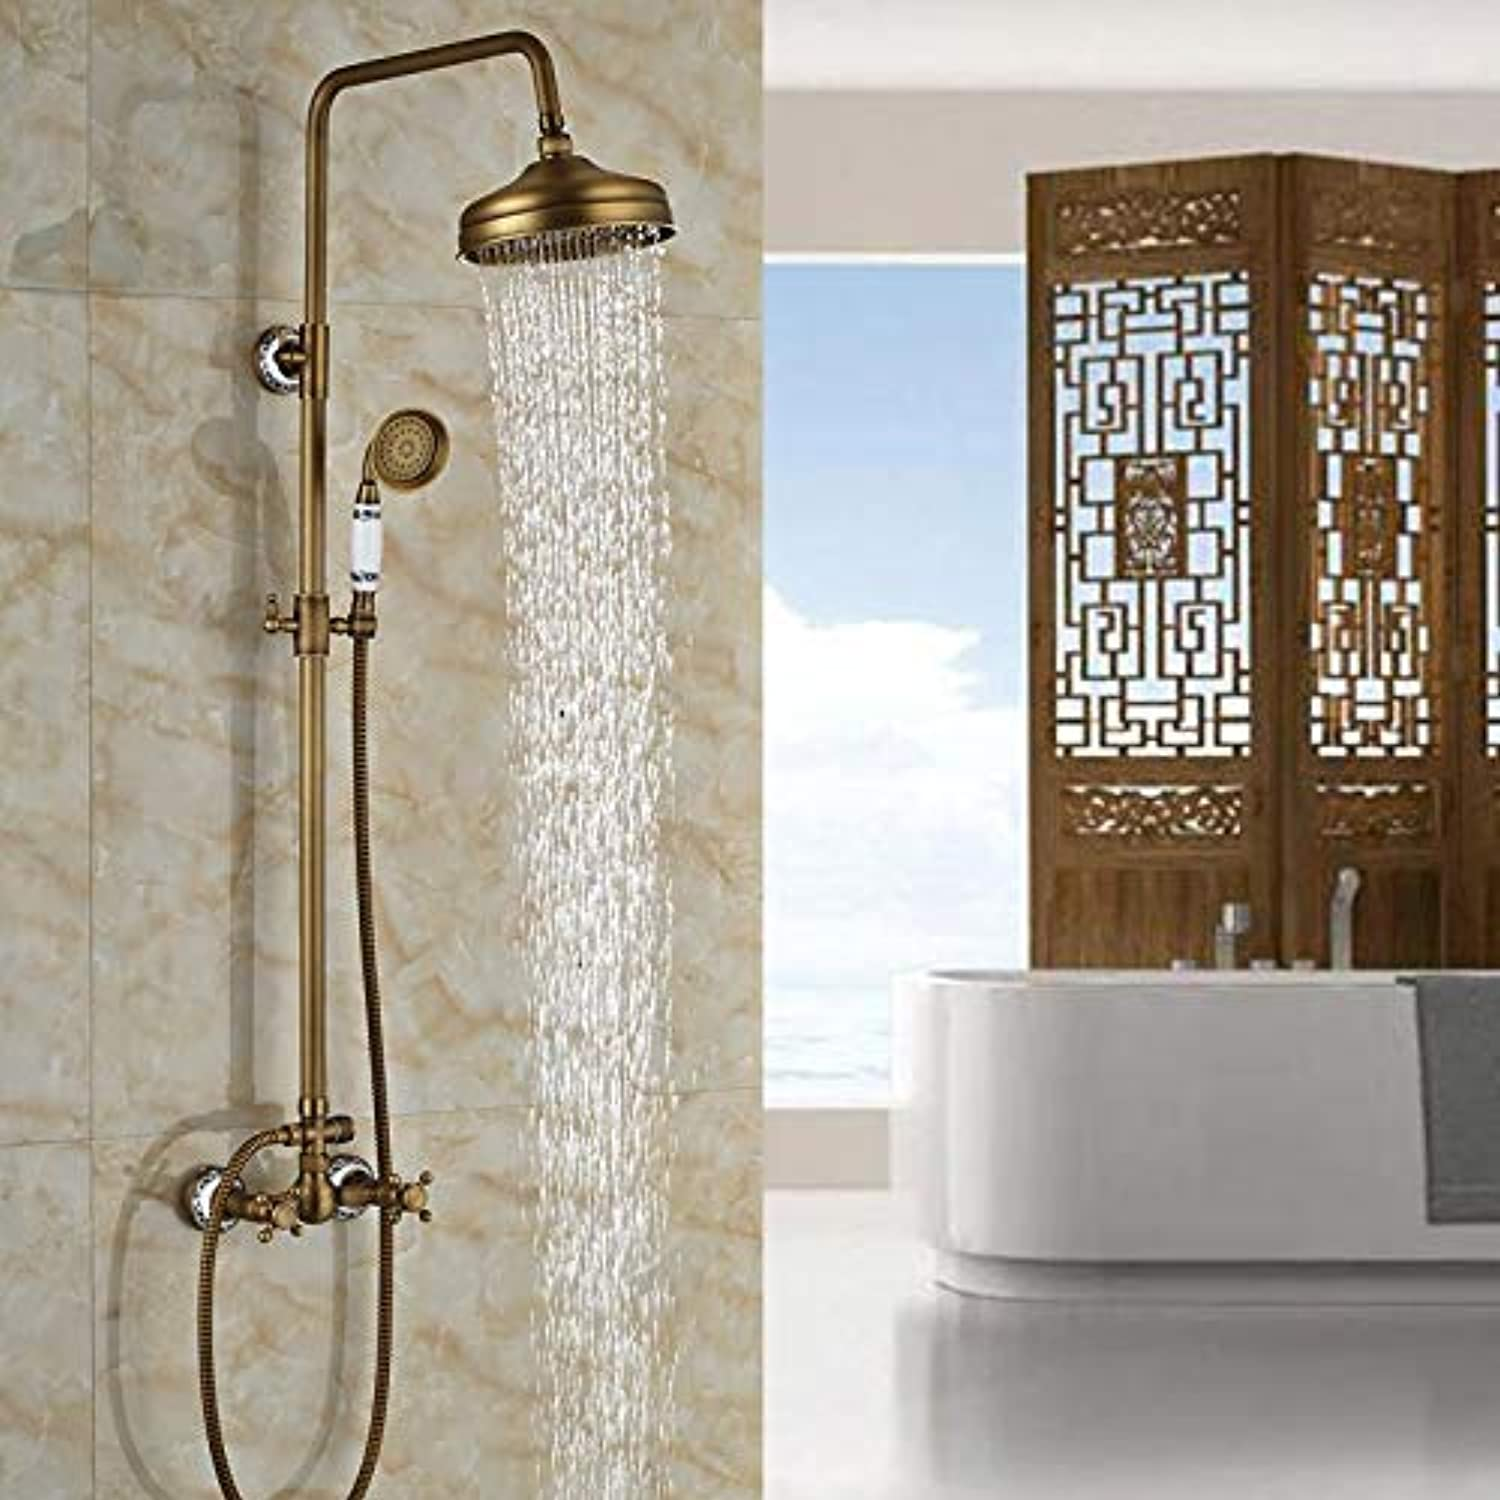 Luxury Wall Mounted Rain Bath and Shower Faucet Set with Hand Shower Dual Handle Antique Brass Finish